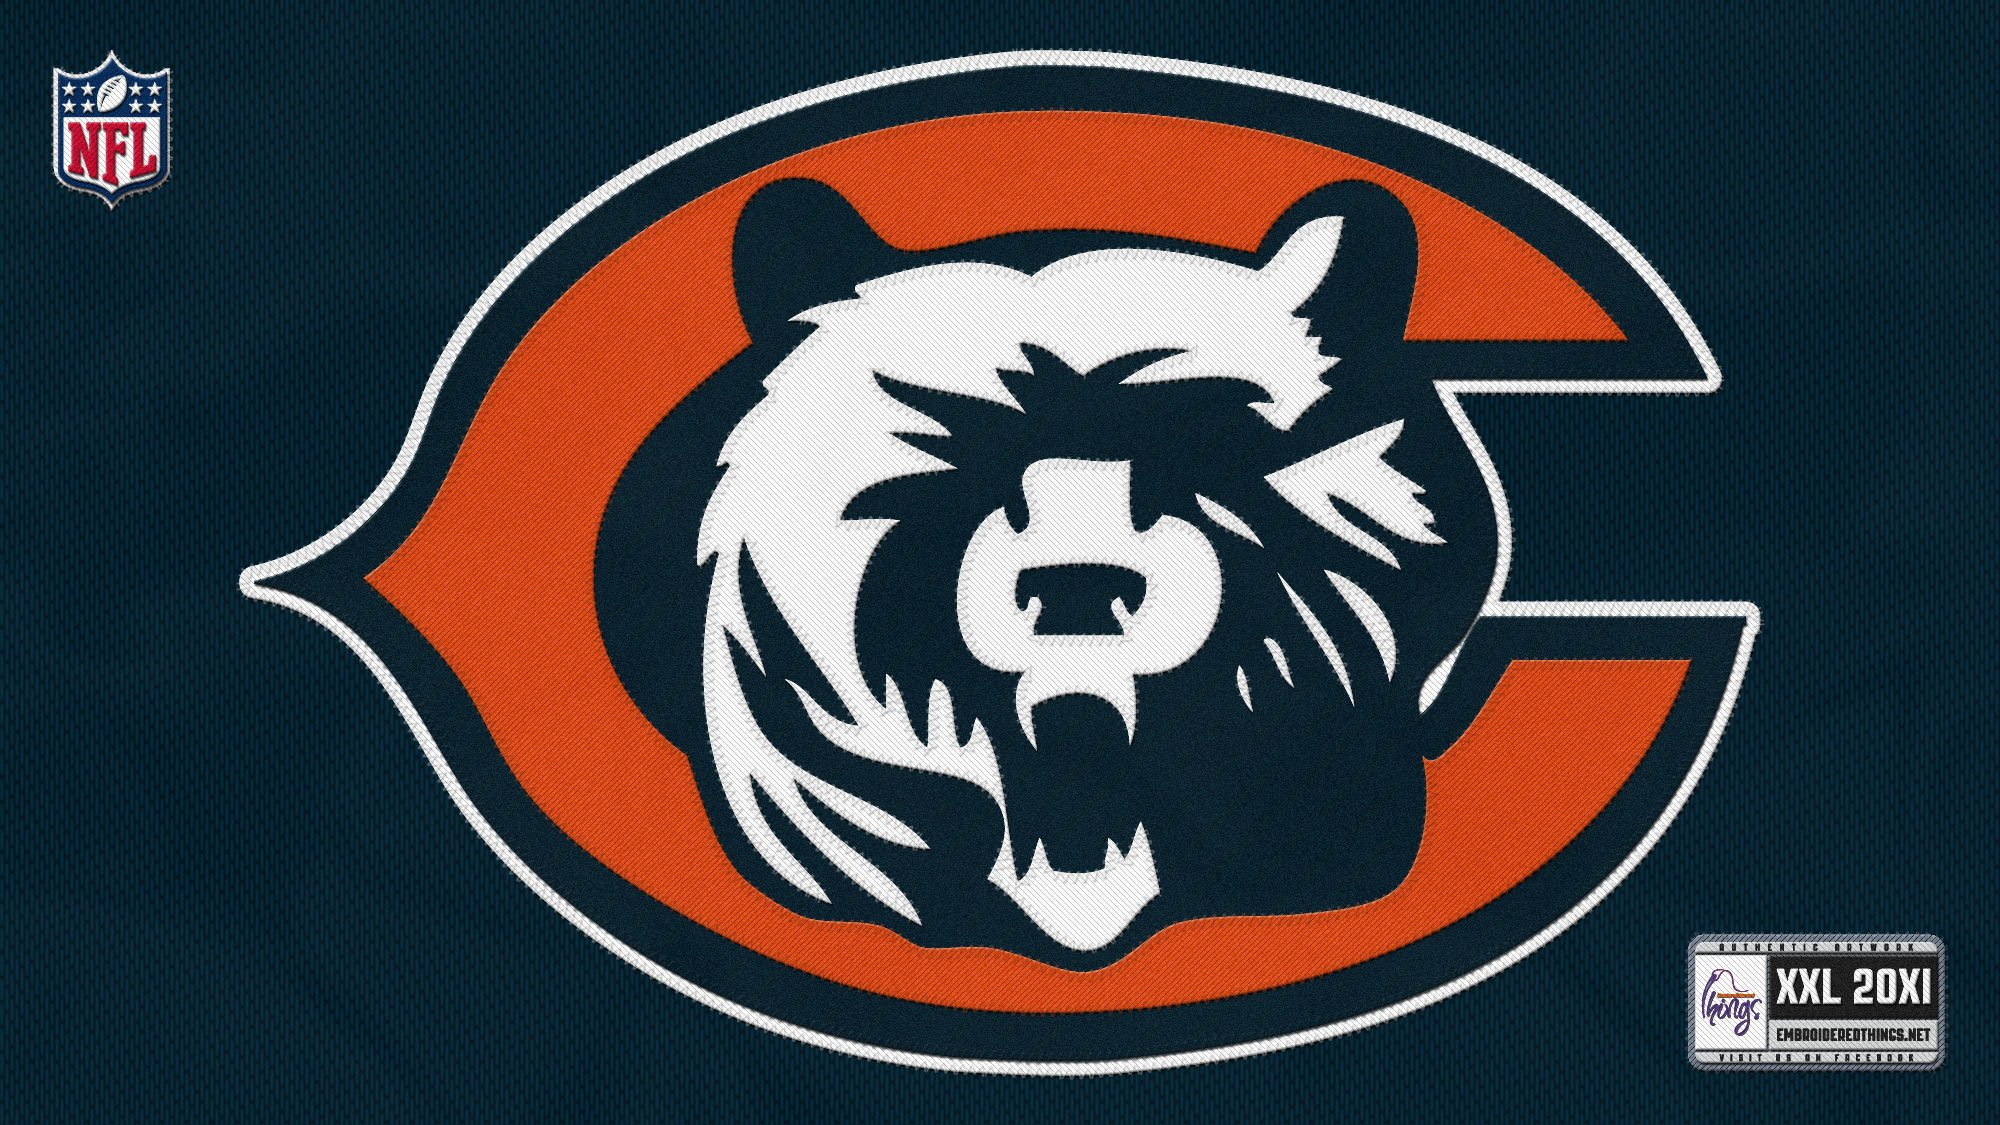 Chicago Bears Computer Wallpapers Desktop Backgrounds 2000x1125 2000x1125